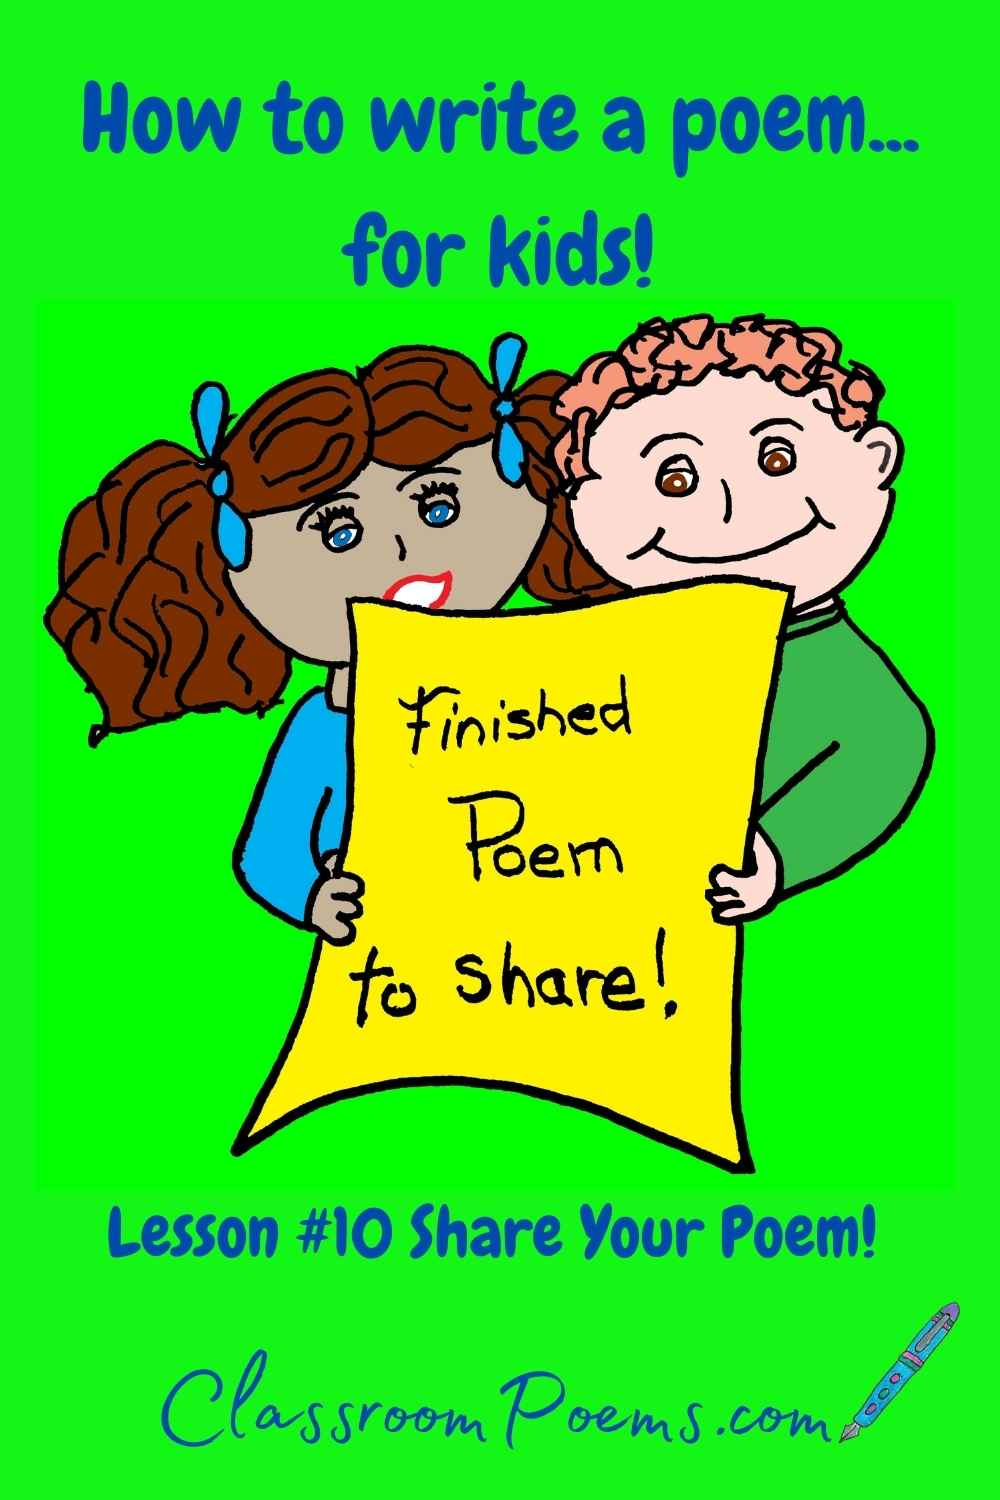 How to teach poetry to kids. Share your poem!